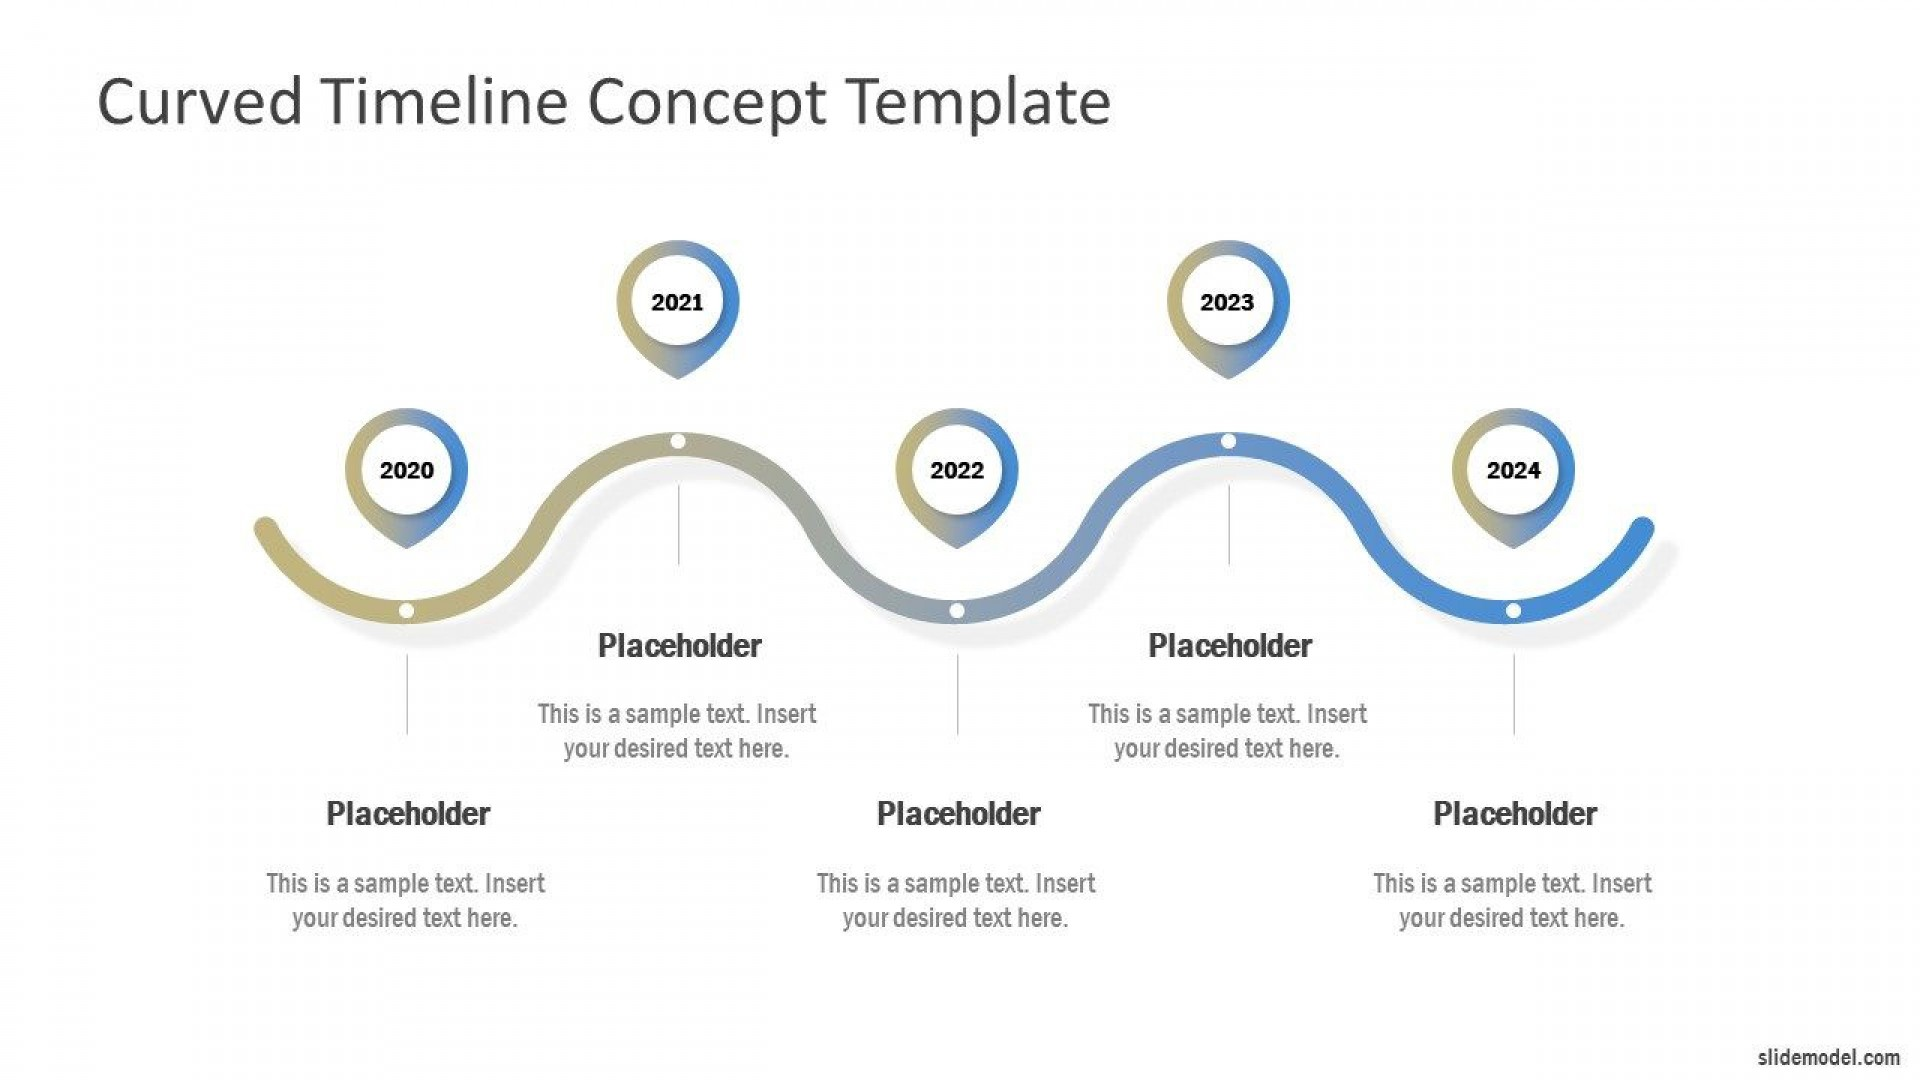 006 Fascinating Timeline Sample For Ppt  Powerpoint Template 2010 Example1920